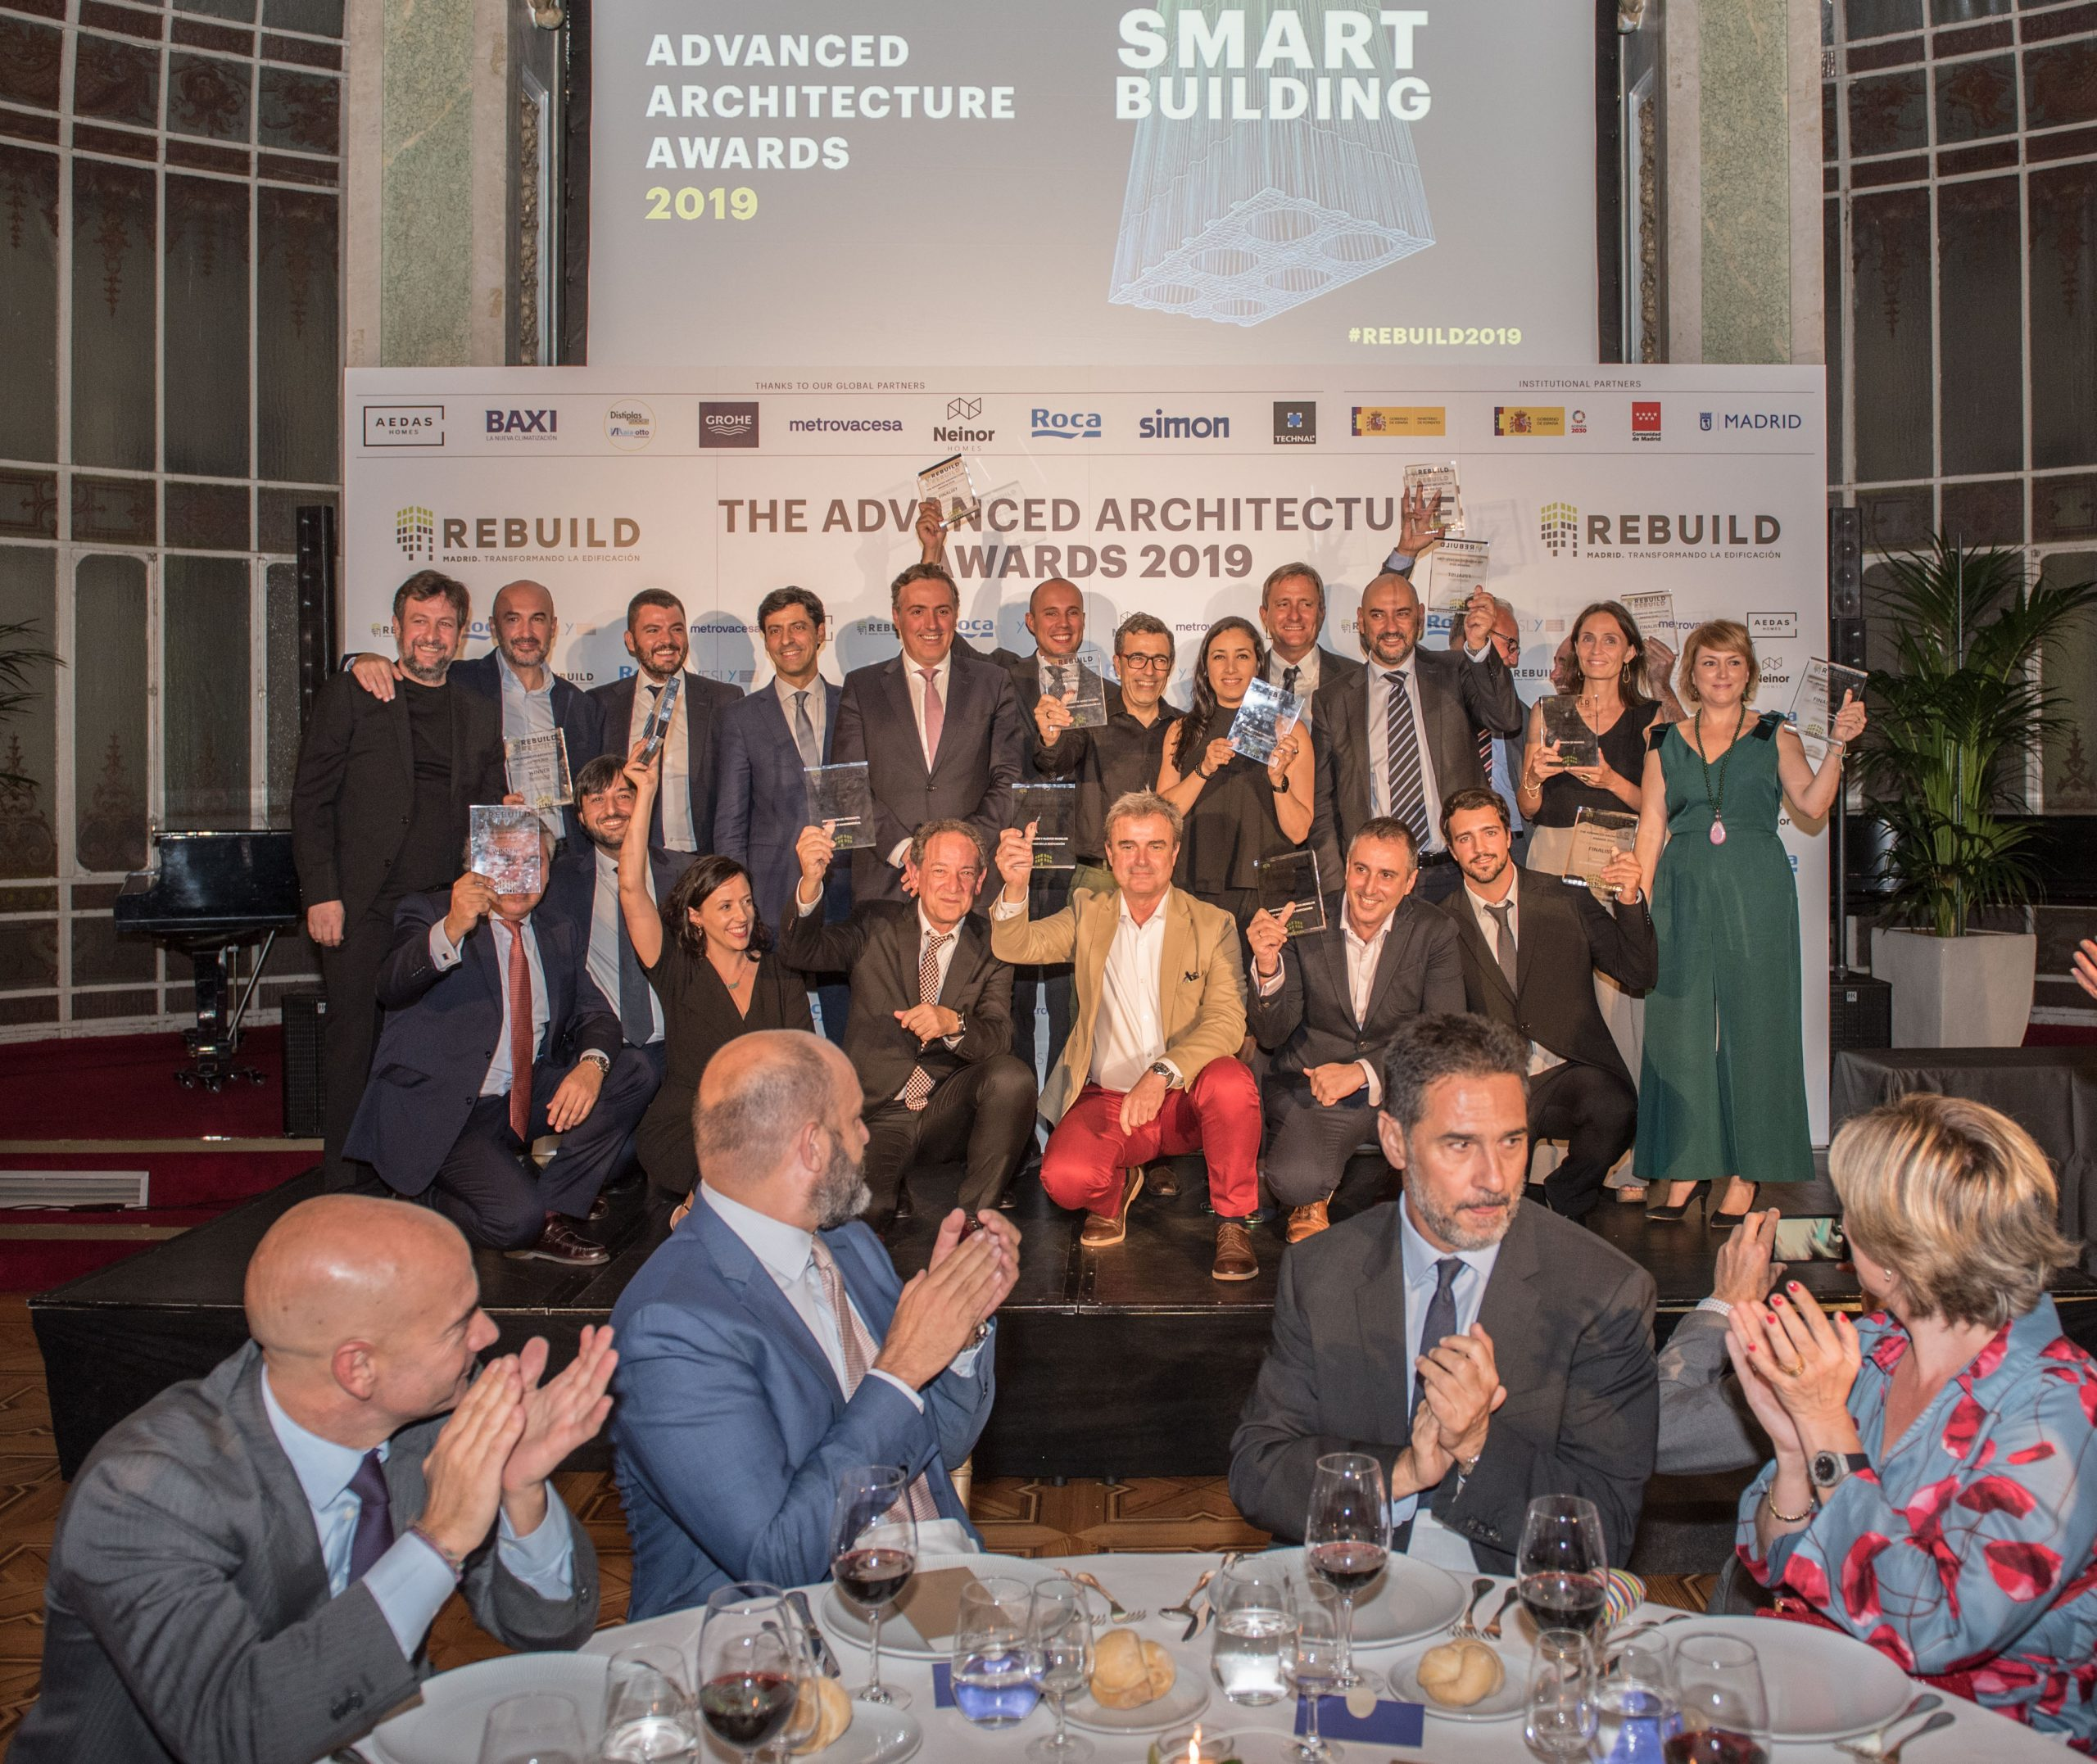 TITAN, Aldes, BIM6D, Factor-ia e Instituto Provençana, los ganadores de los 'The Advanced Architecture Awards 2019'